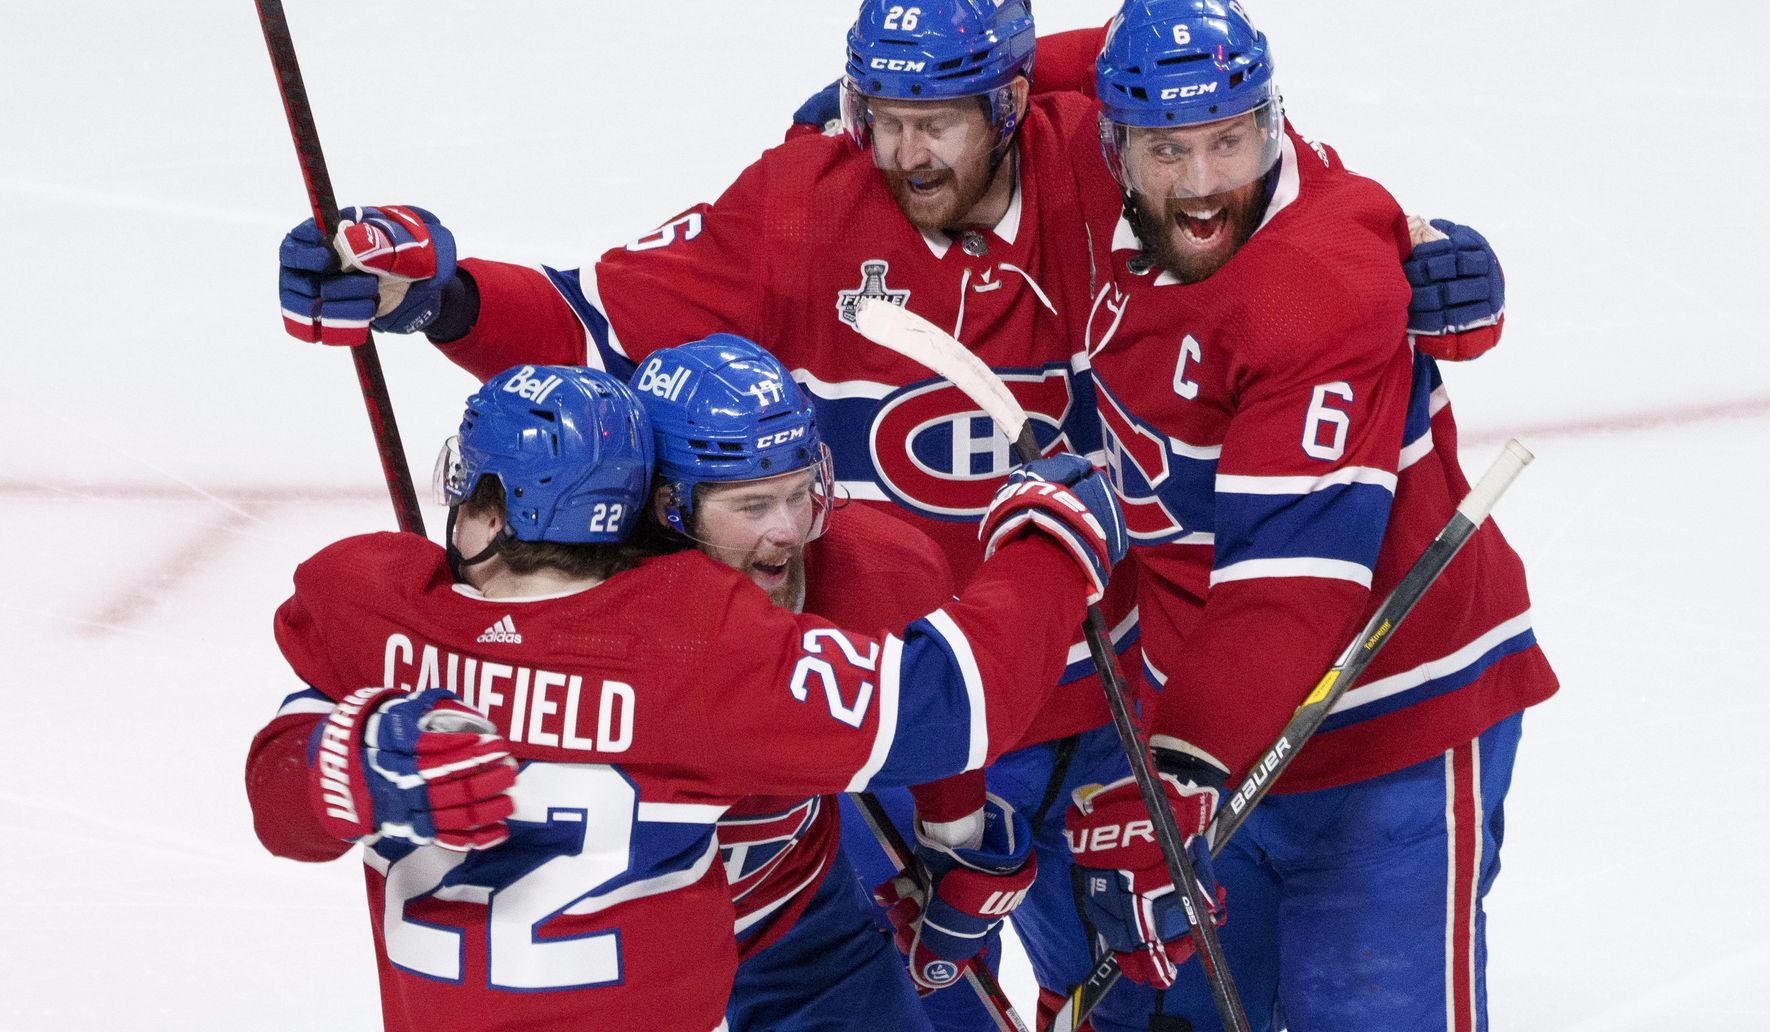 Canadiens show fire in staving off elimination in Stanley Cup Final